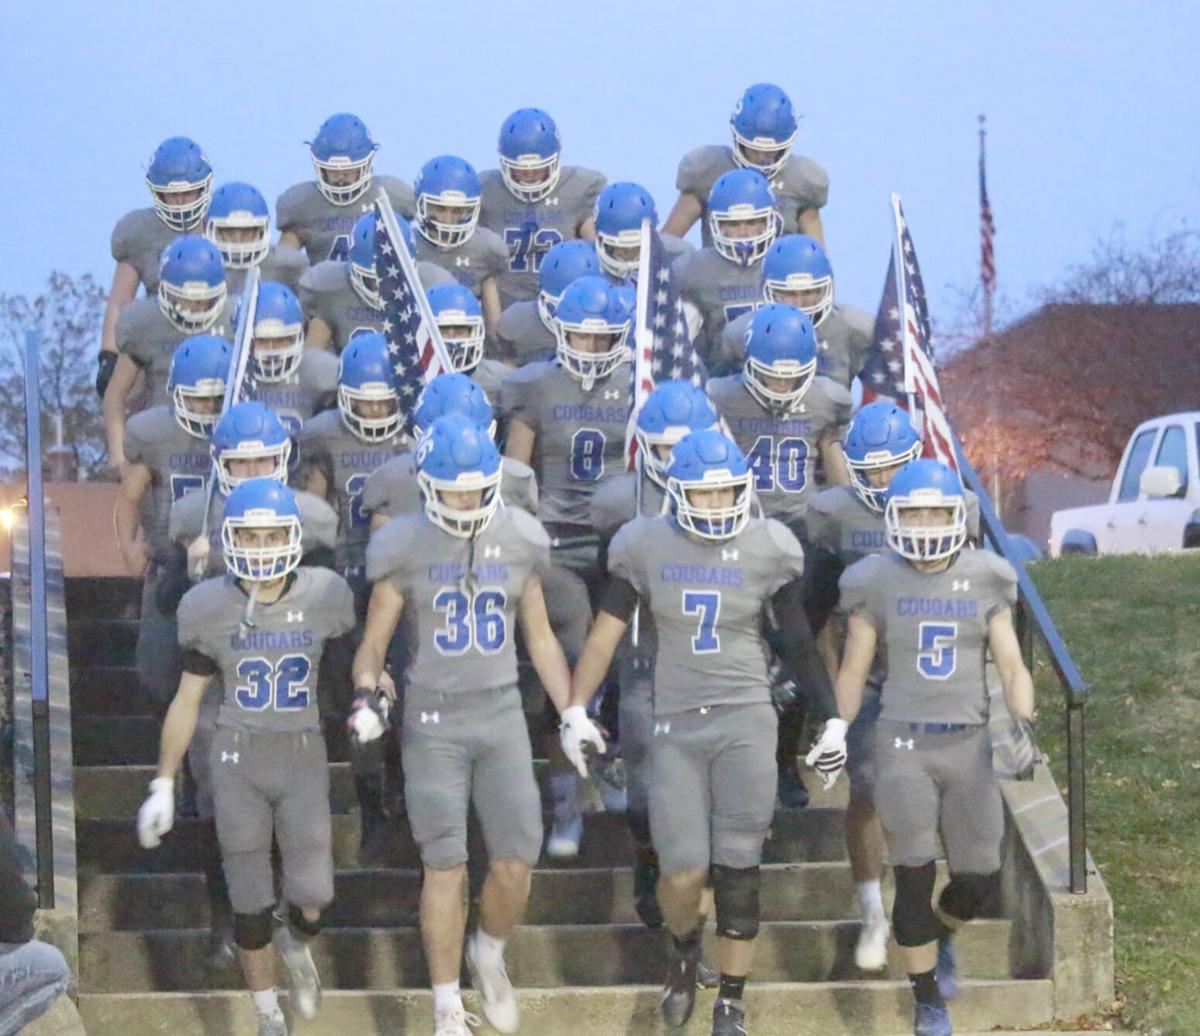 101720-nt-camgriswoldfootball02.jpg